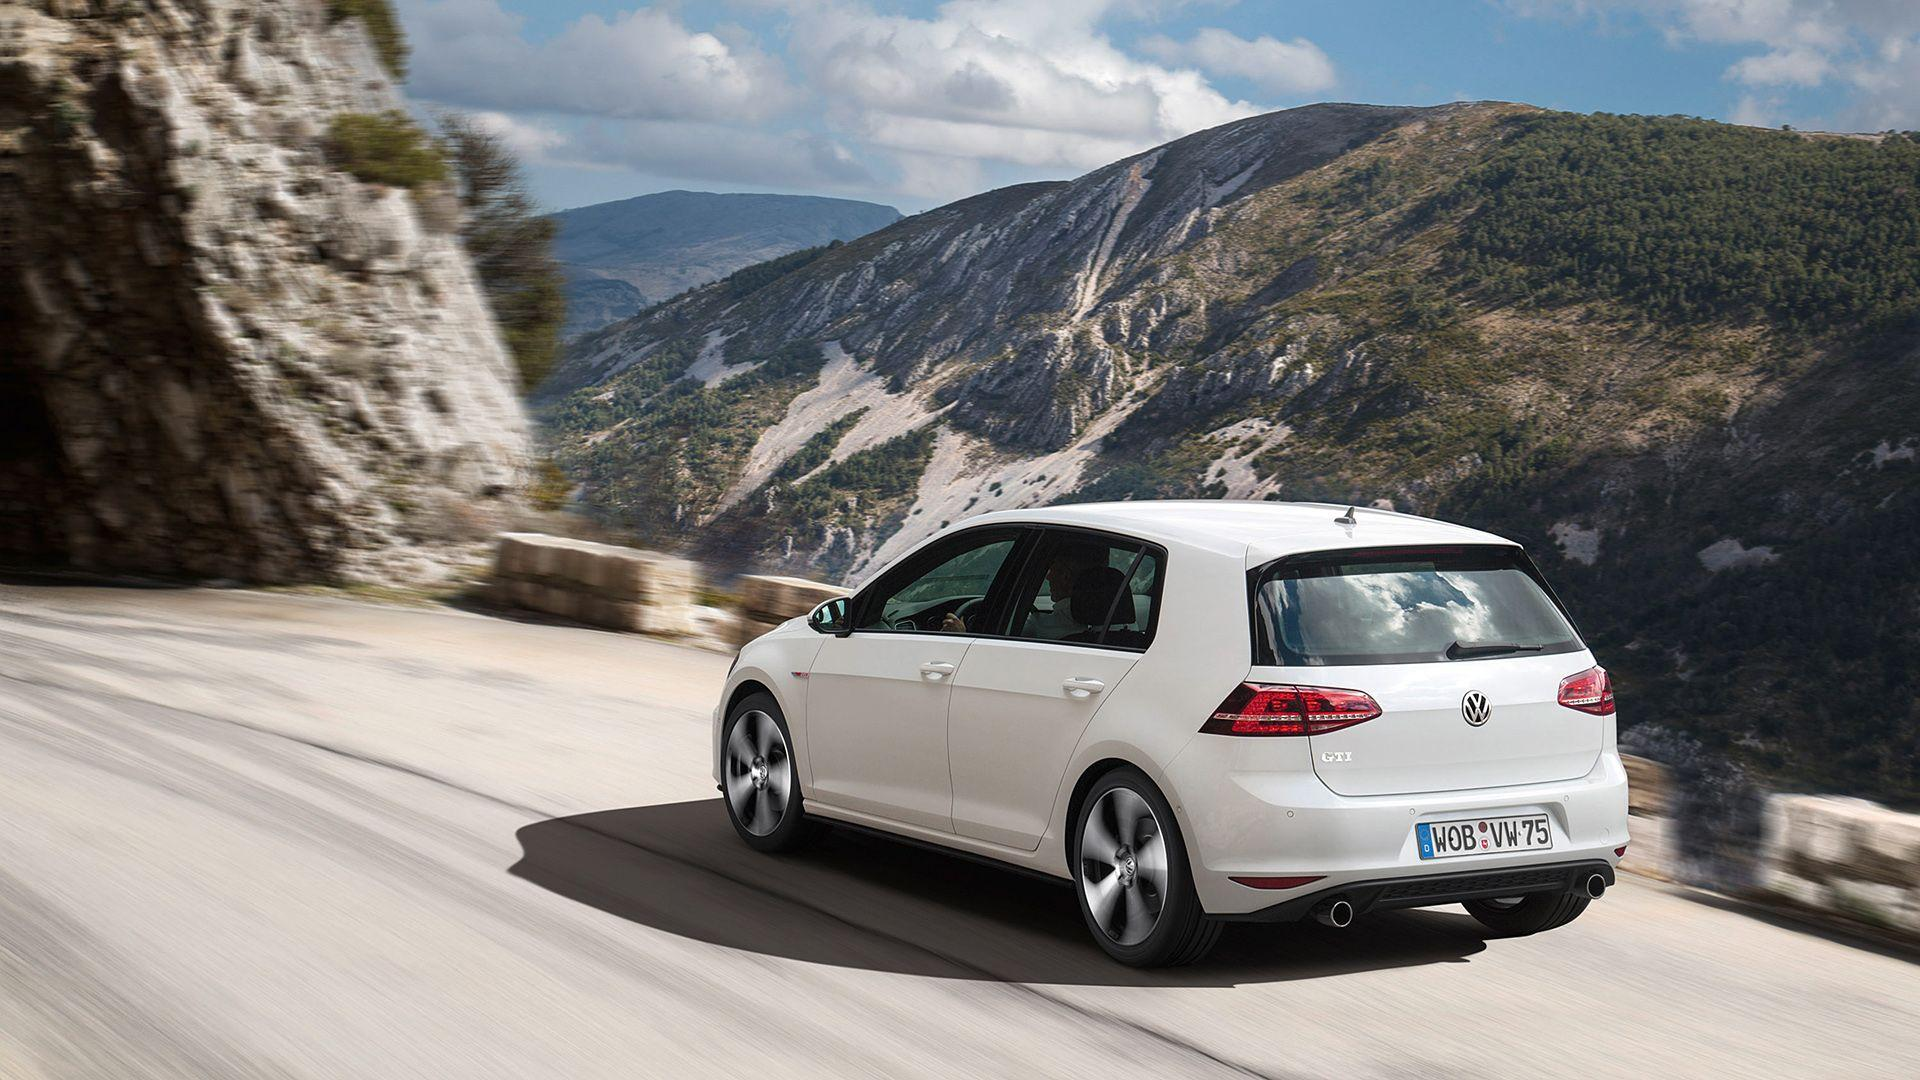 2014 Volkswagen Golf GTI Wallpapers & HD Images - WSupercars